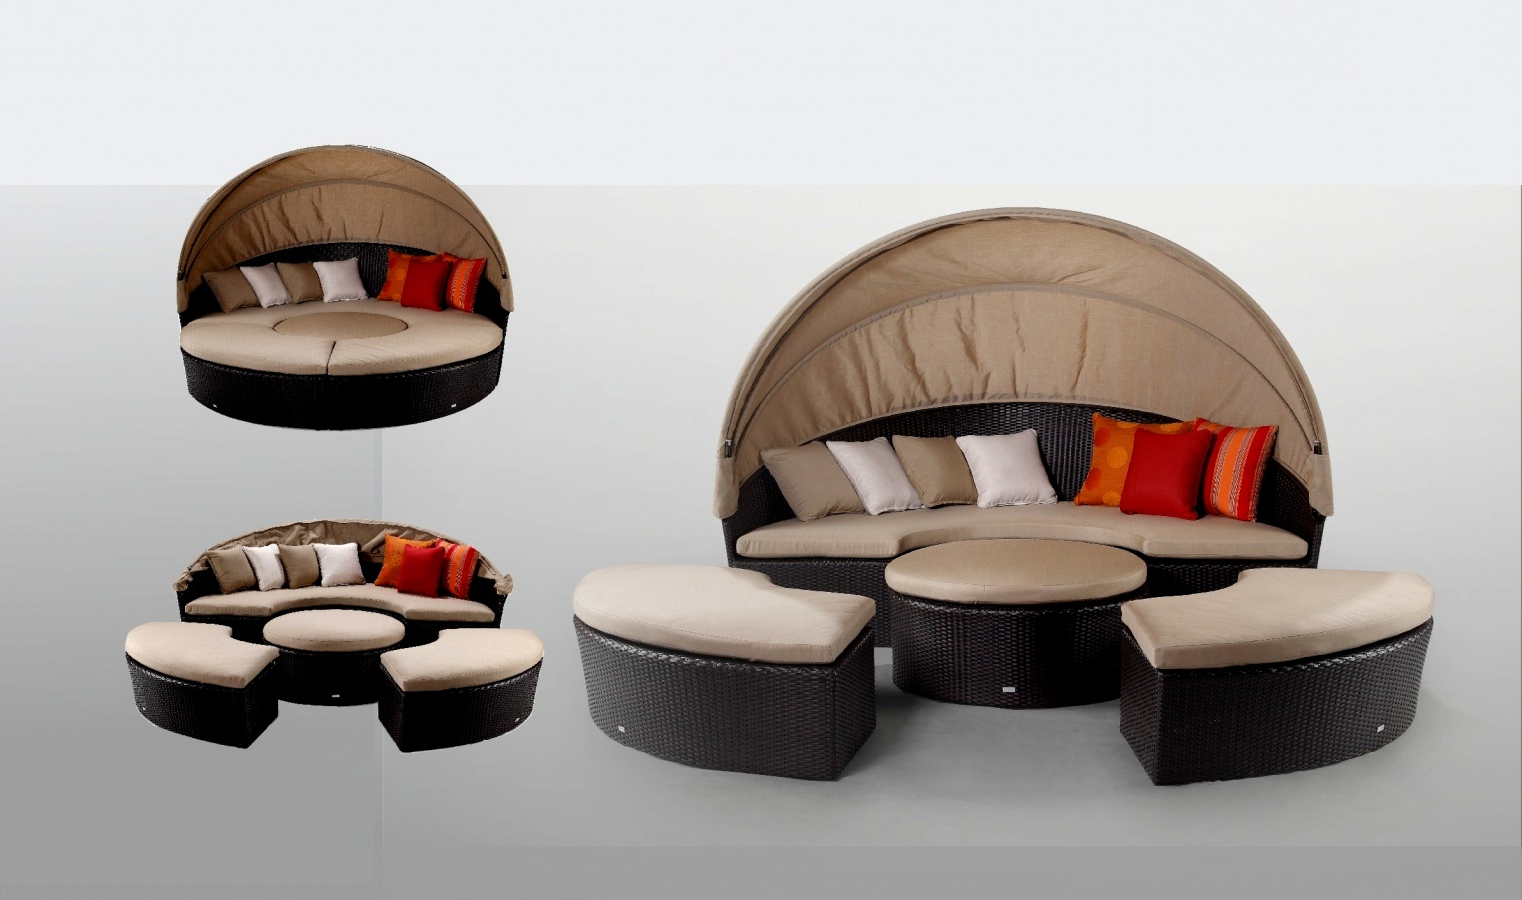 Patio Day Bed Find Olu Bamboo Large Round Daybed With Intended For Most Recently Released Leiston Round Patio Daybeds With Cushions (View 11 of 20)